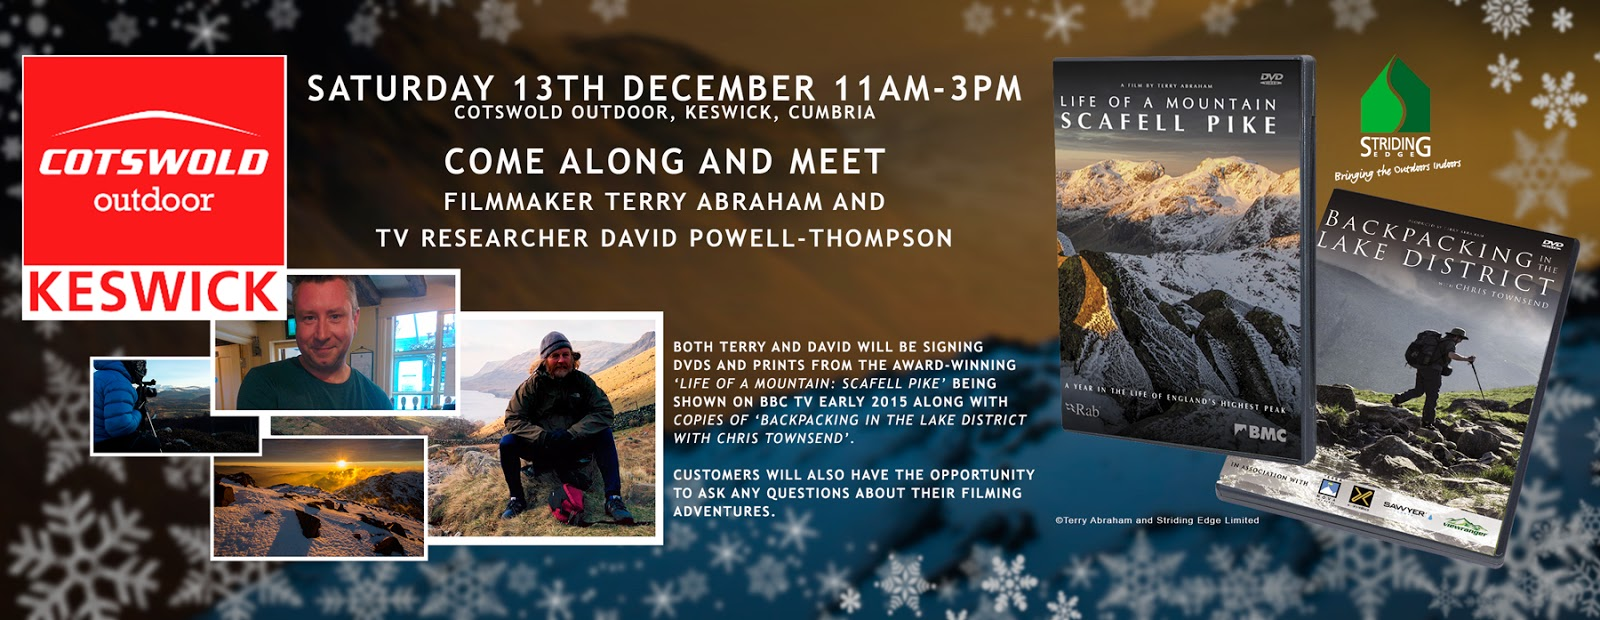 terry abraham david powell-thompson cotswold outdoor keswick